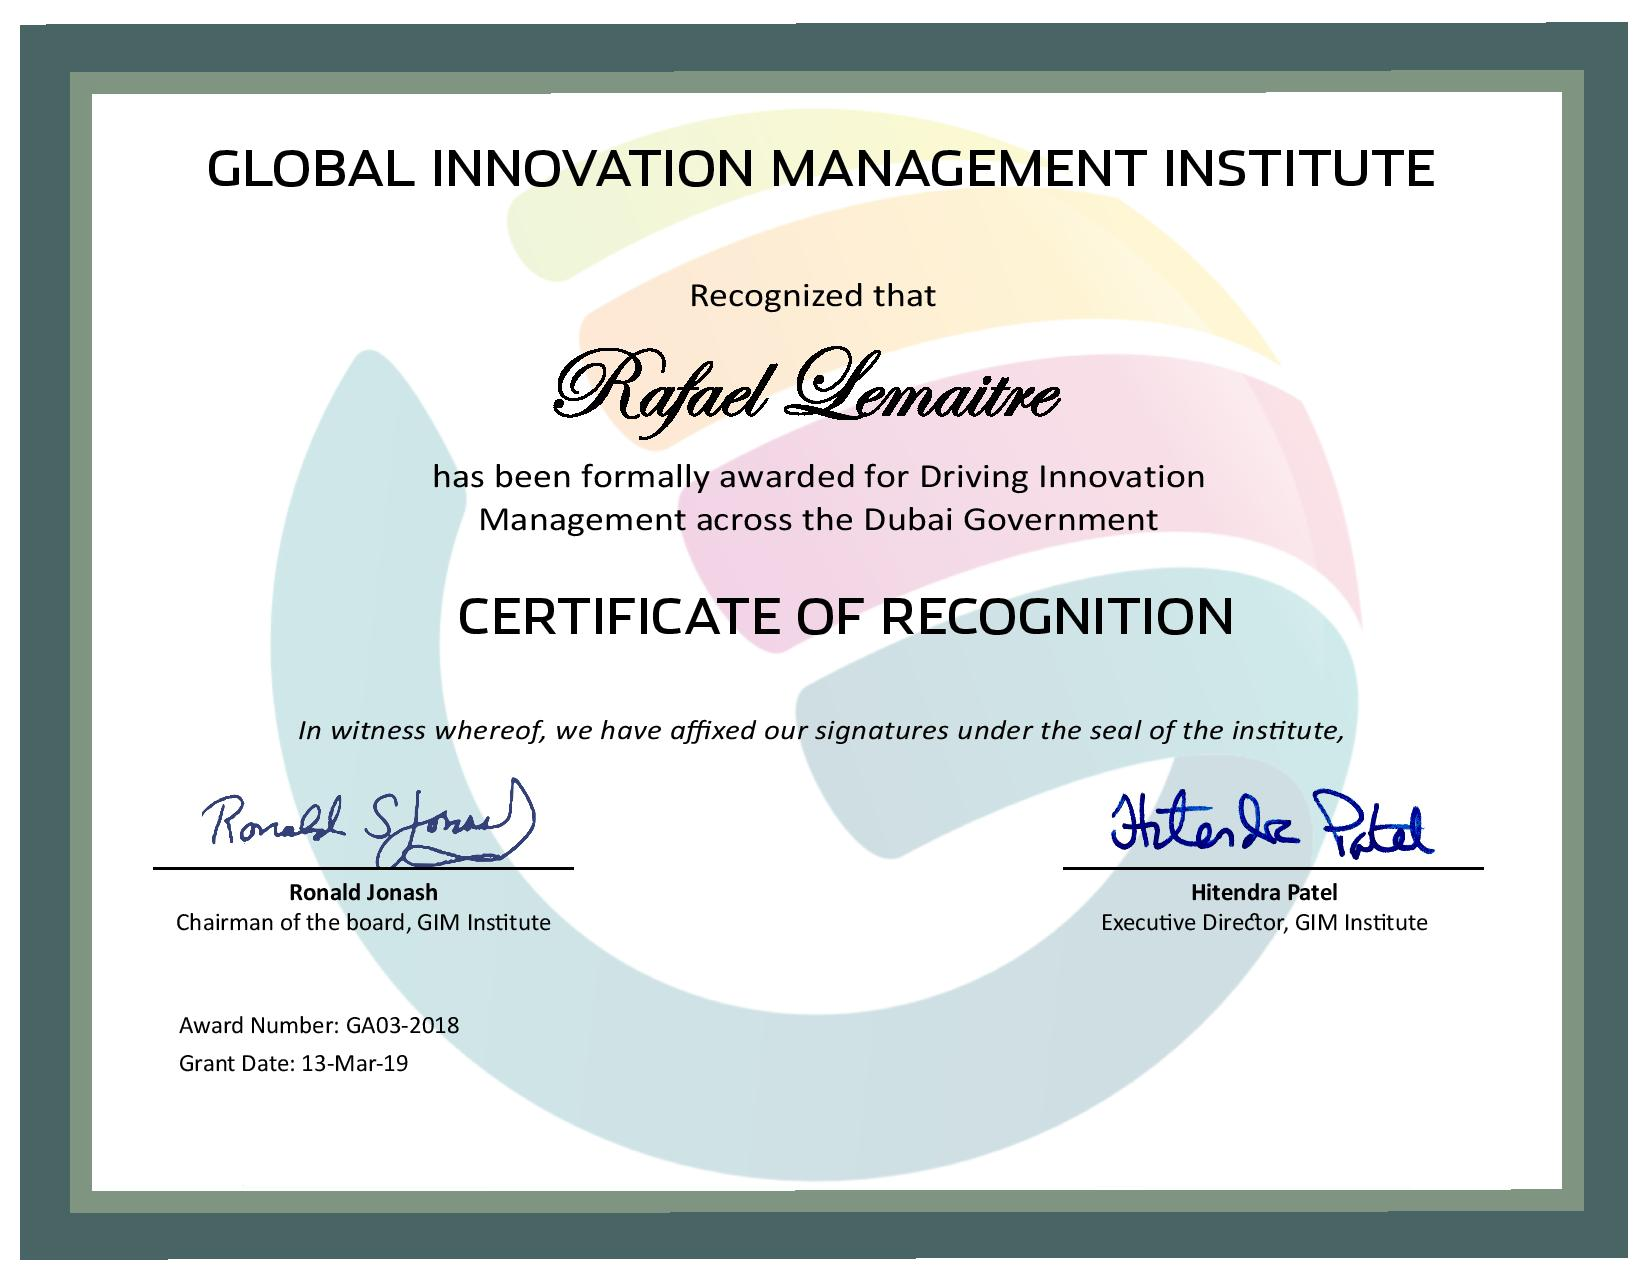 for Driving Innovation Management across the Dubai Government